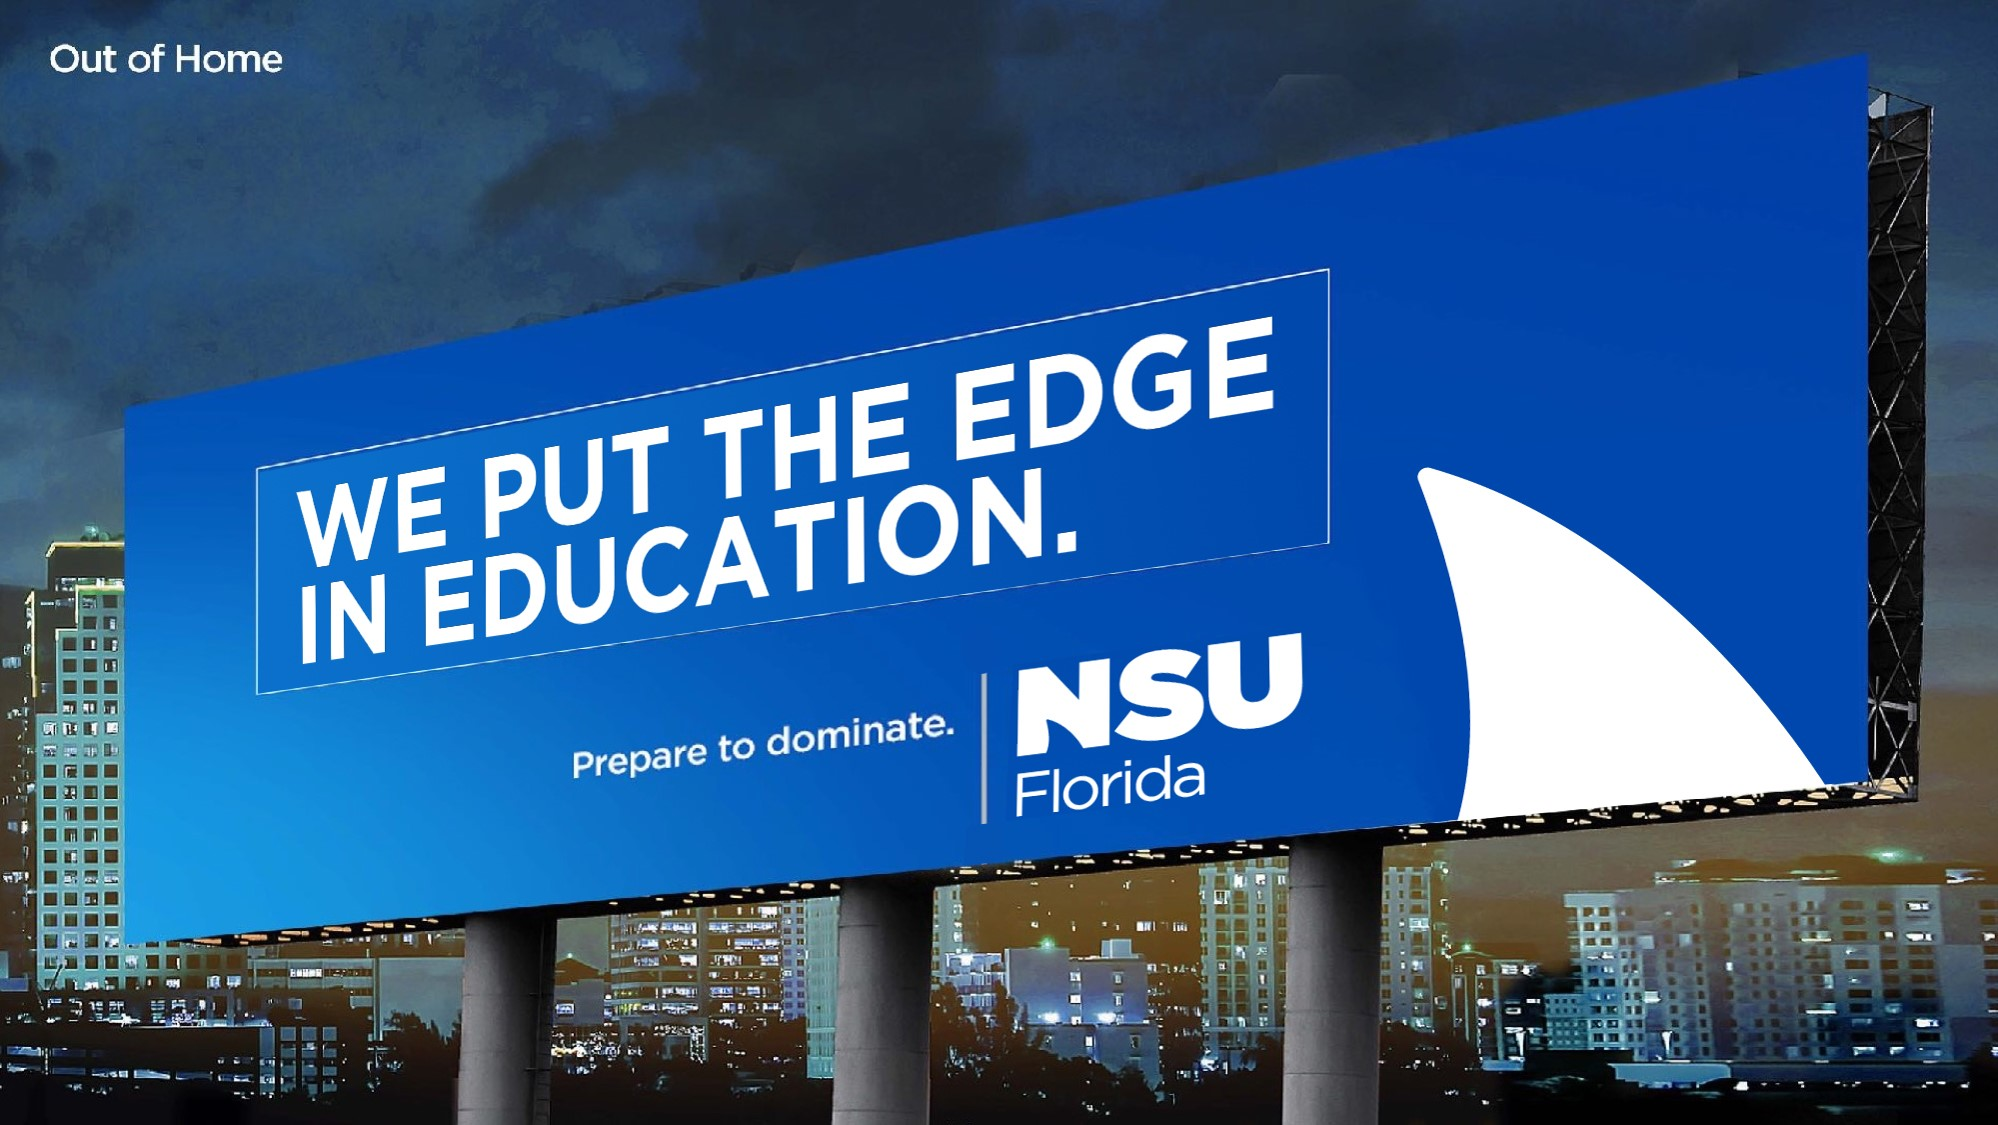 NSU Florida out of home execution